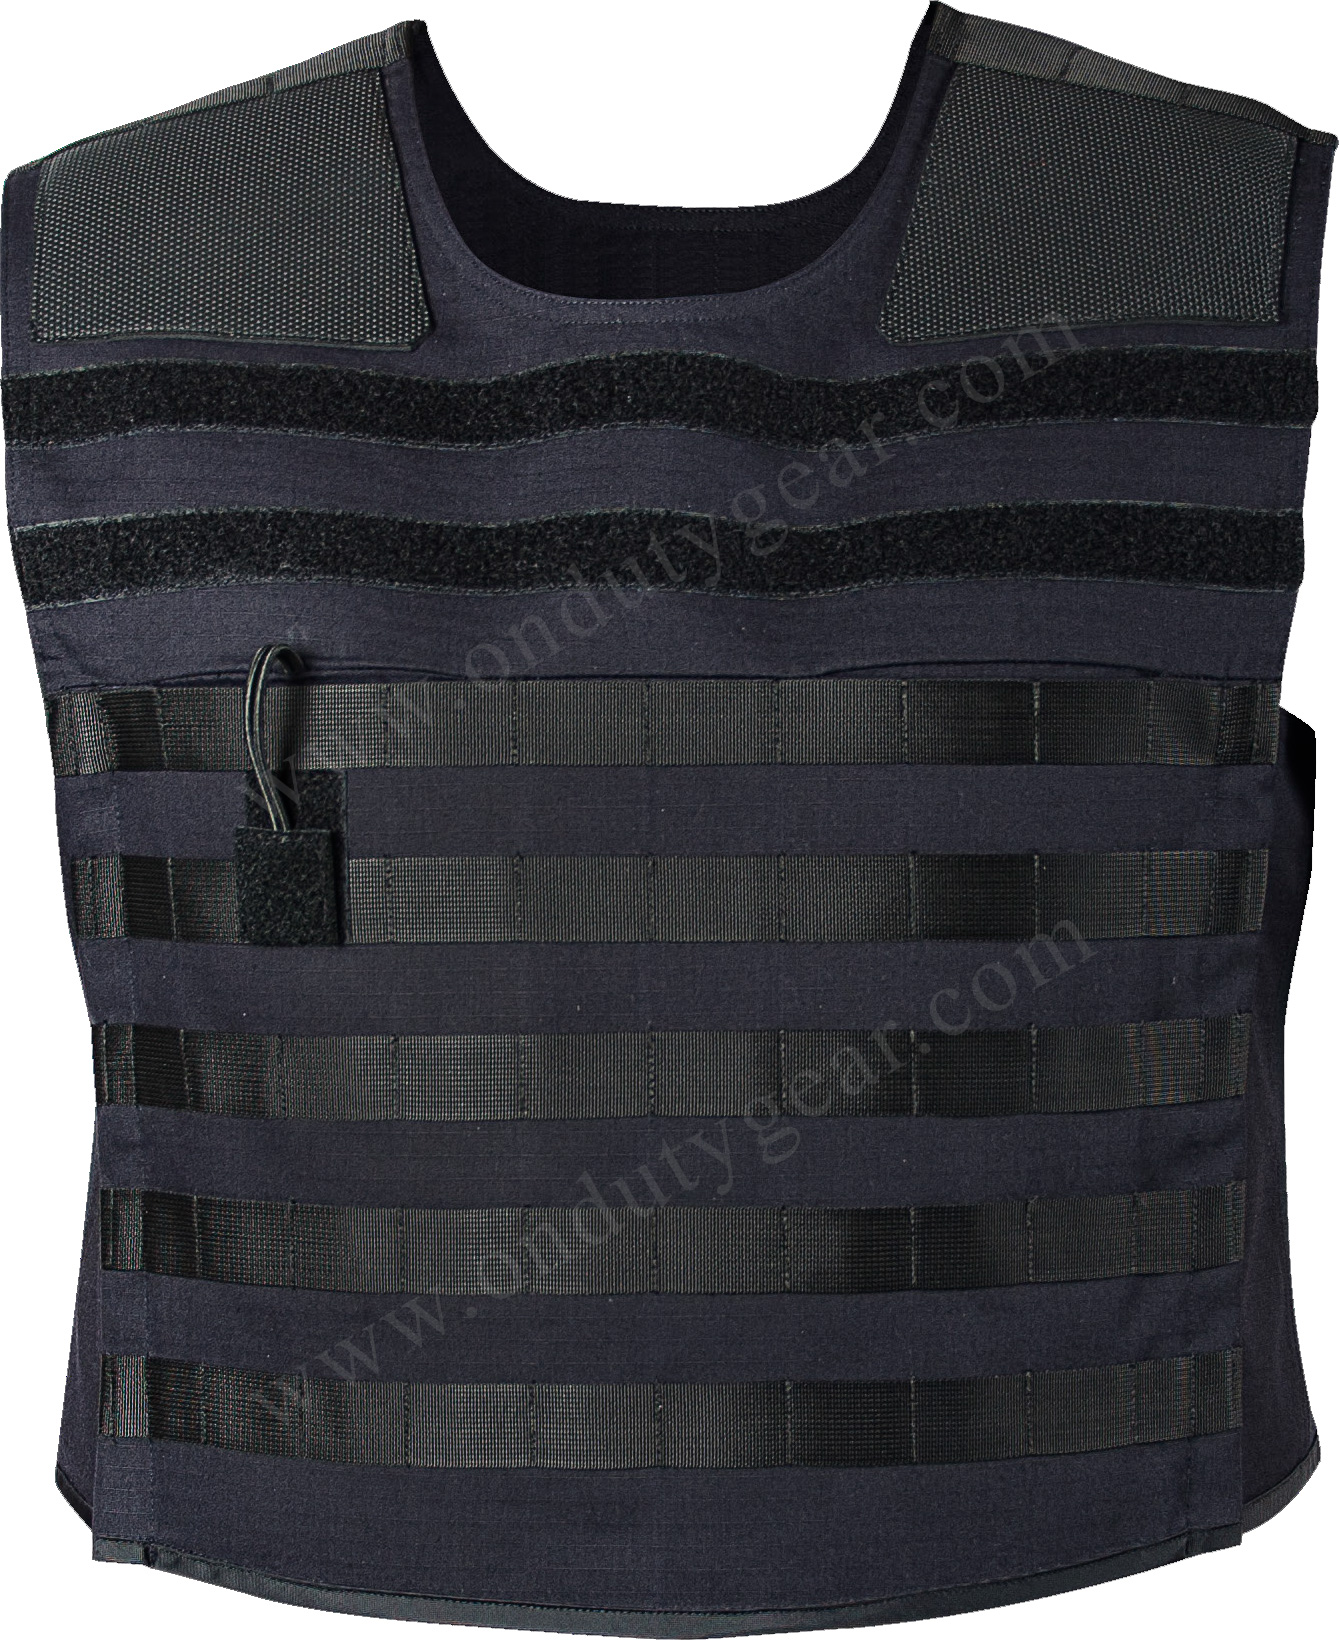 Blauer ArmorSkin Tac-Vest – coming this spring